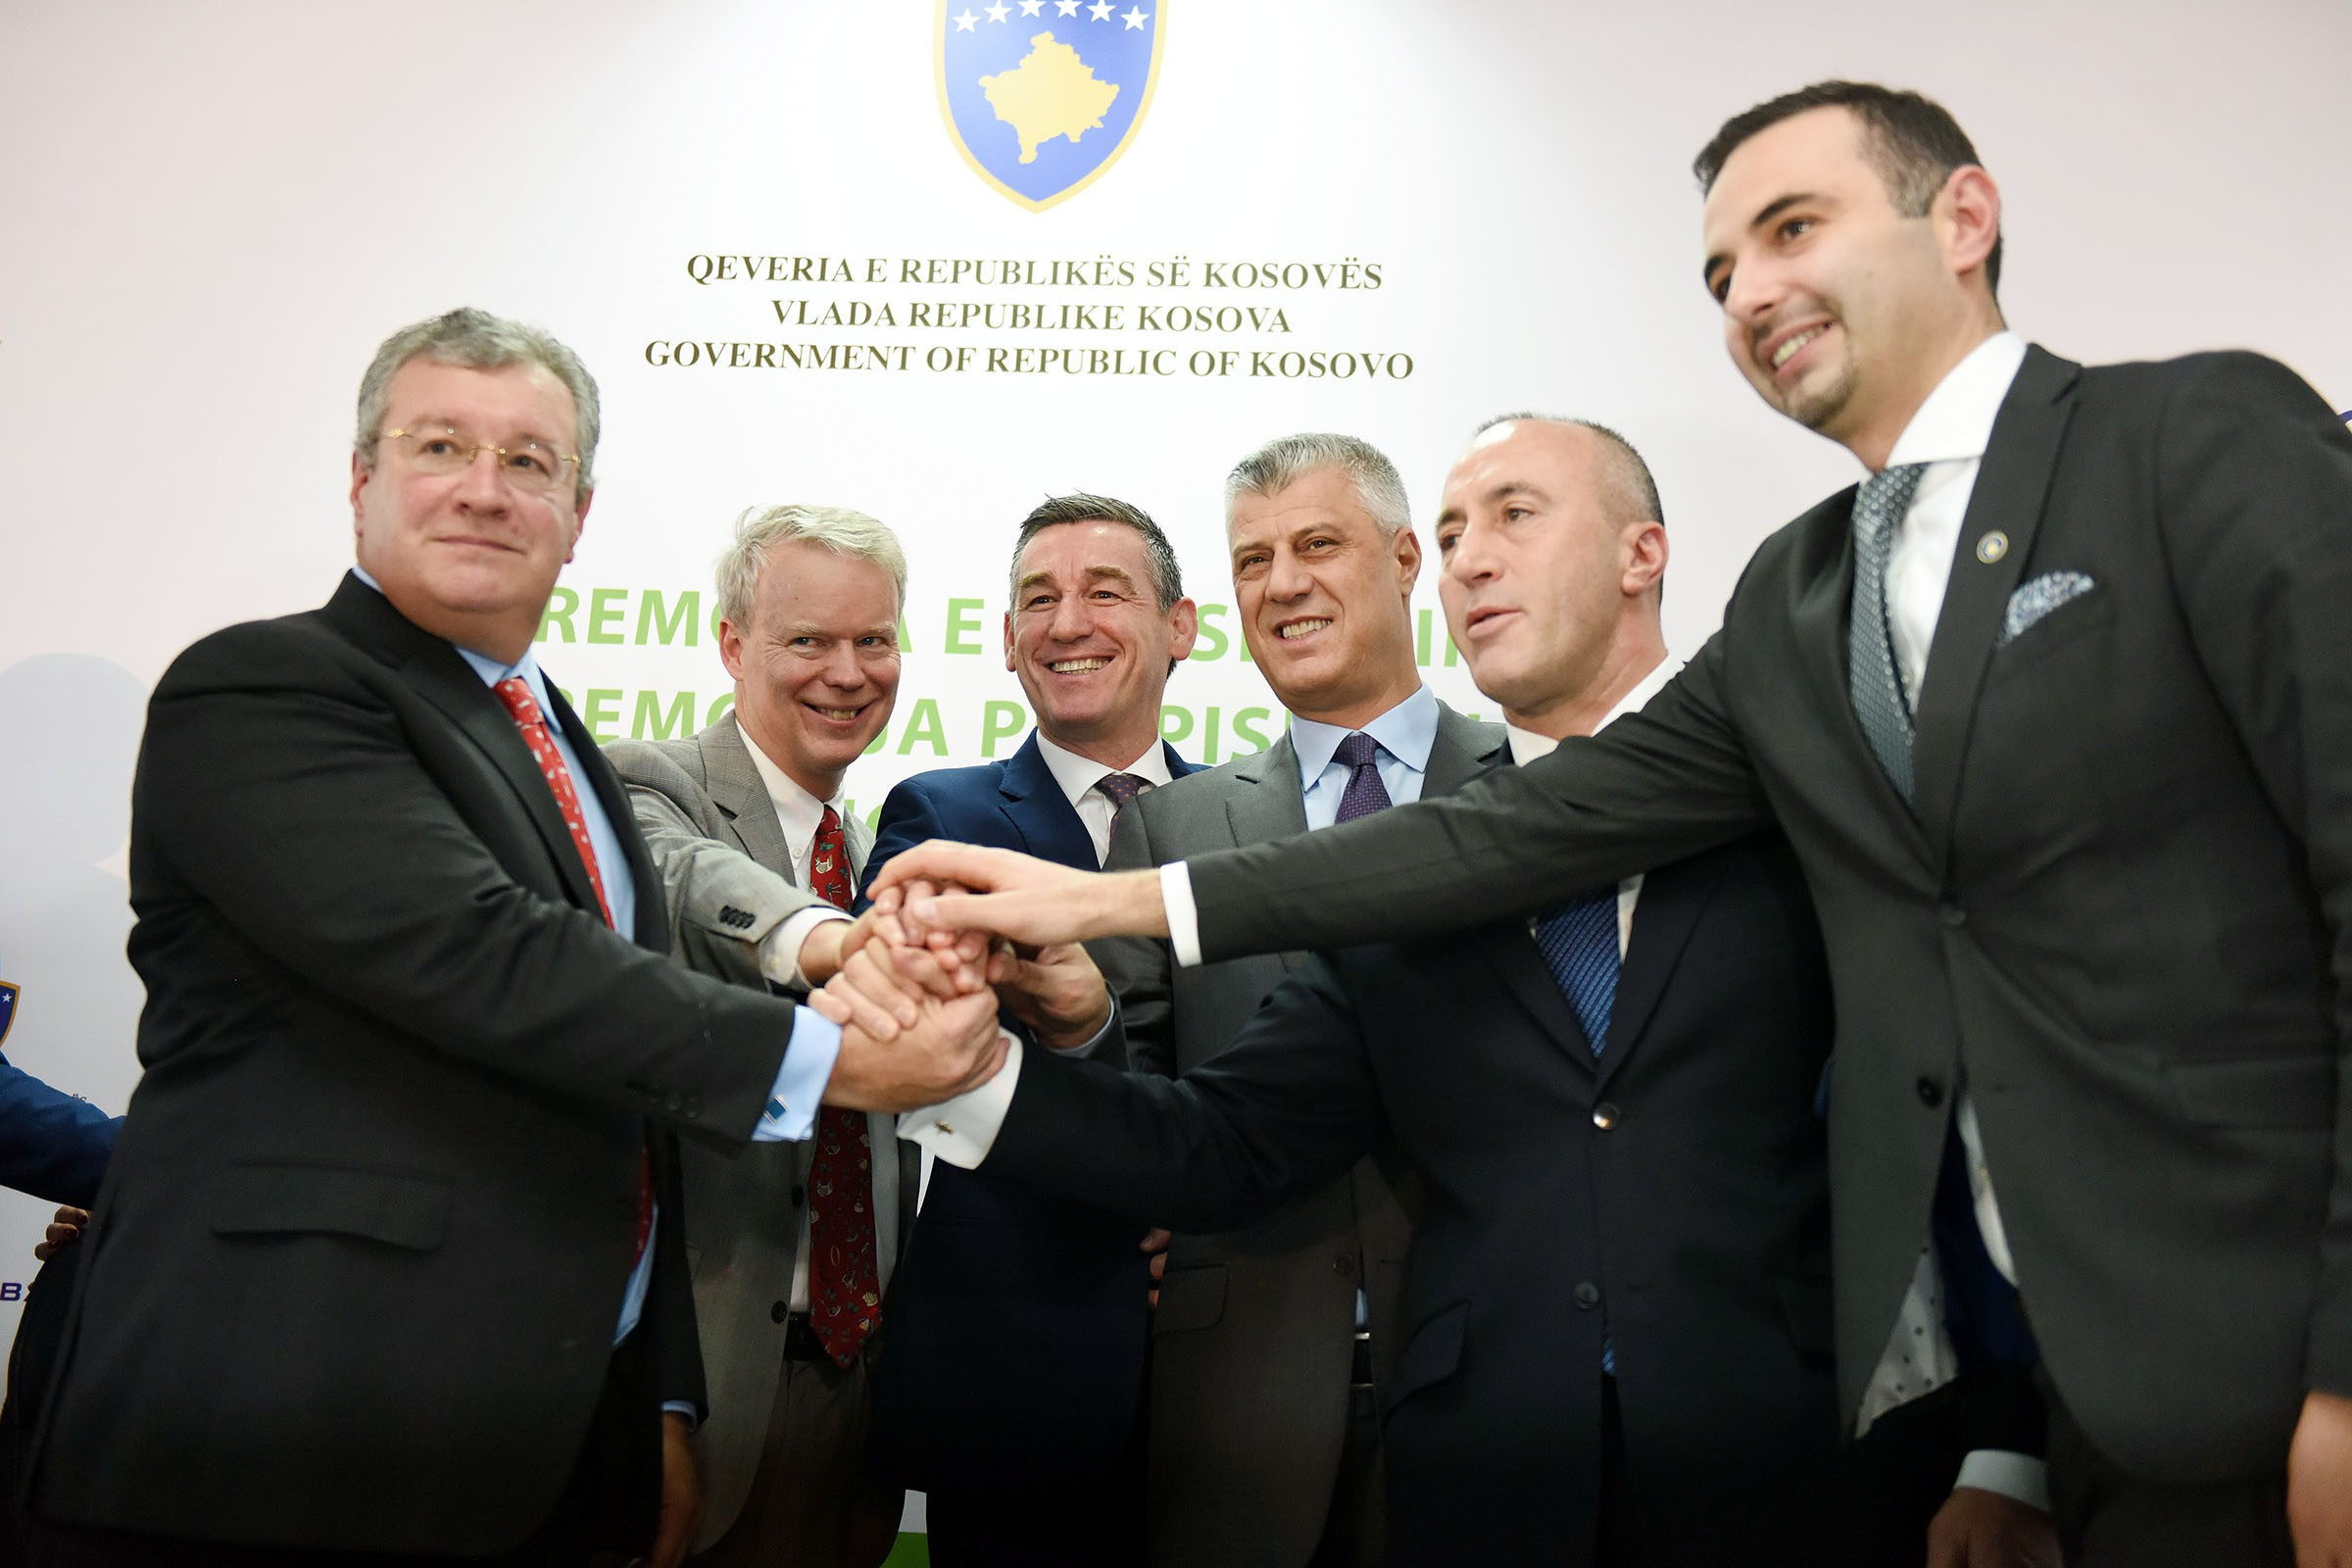 ContourGlobal begins tendering for construction of new coal plant in Kosovo